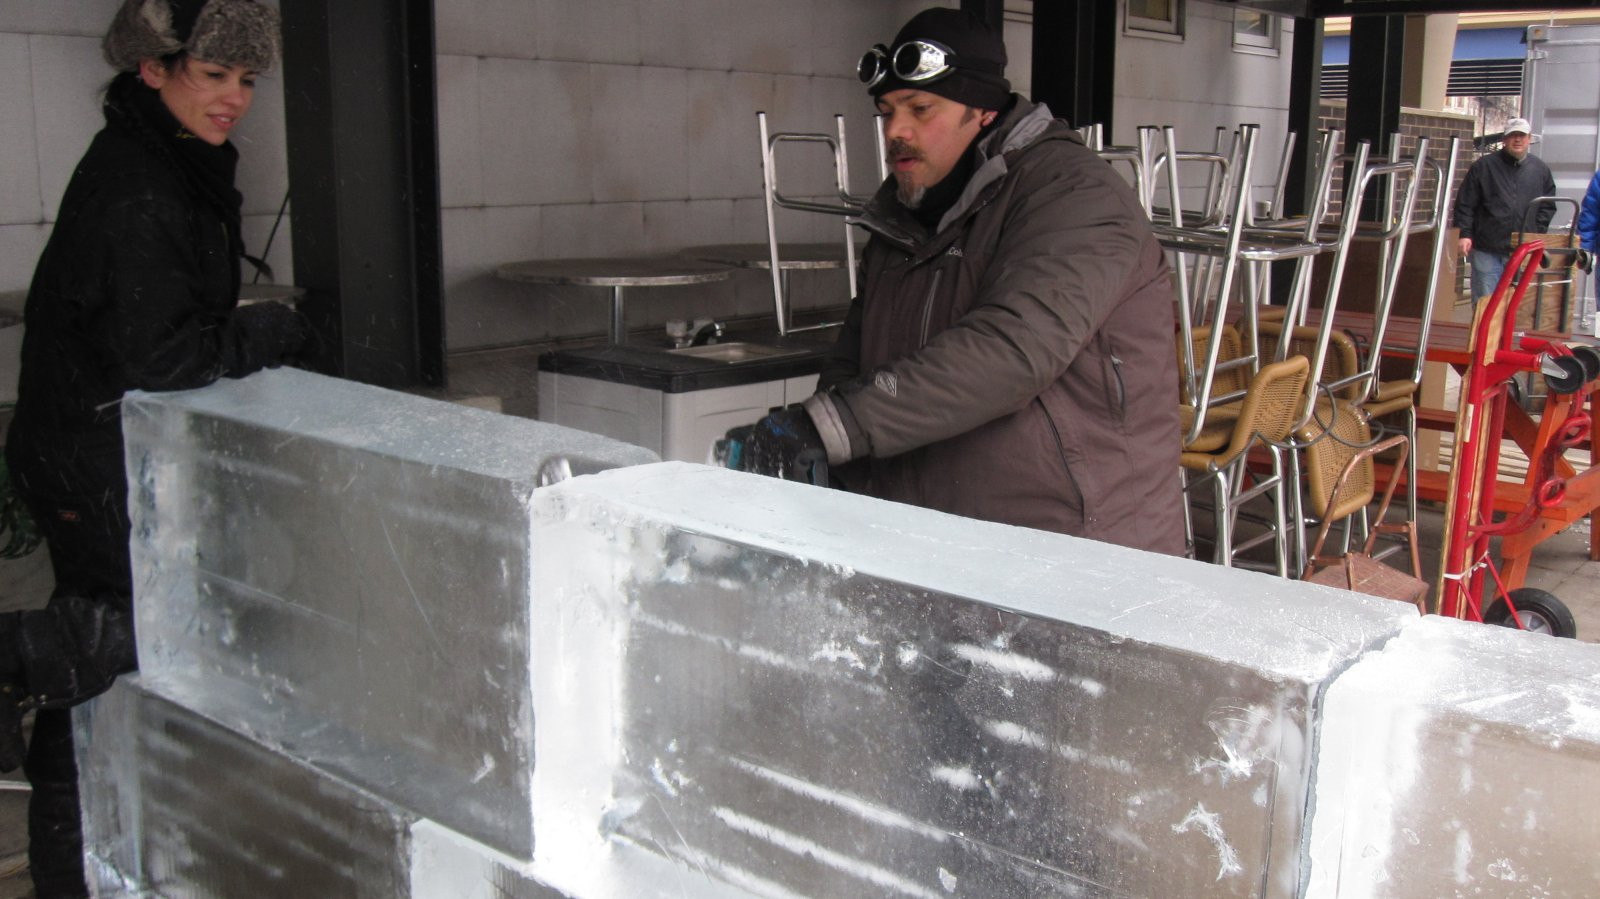 Building the ice bar